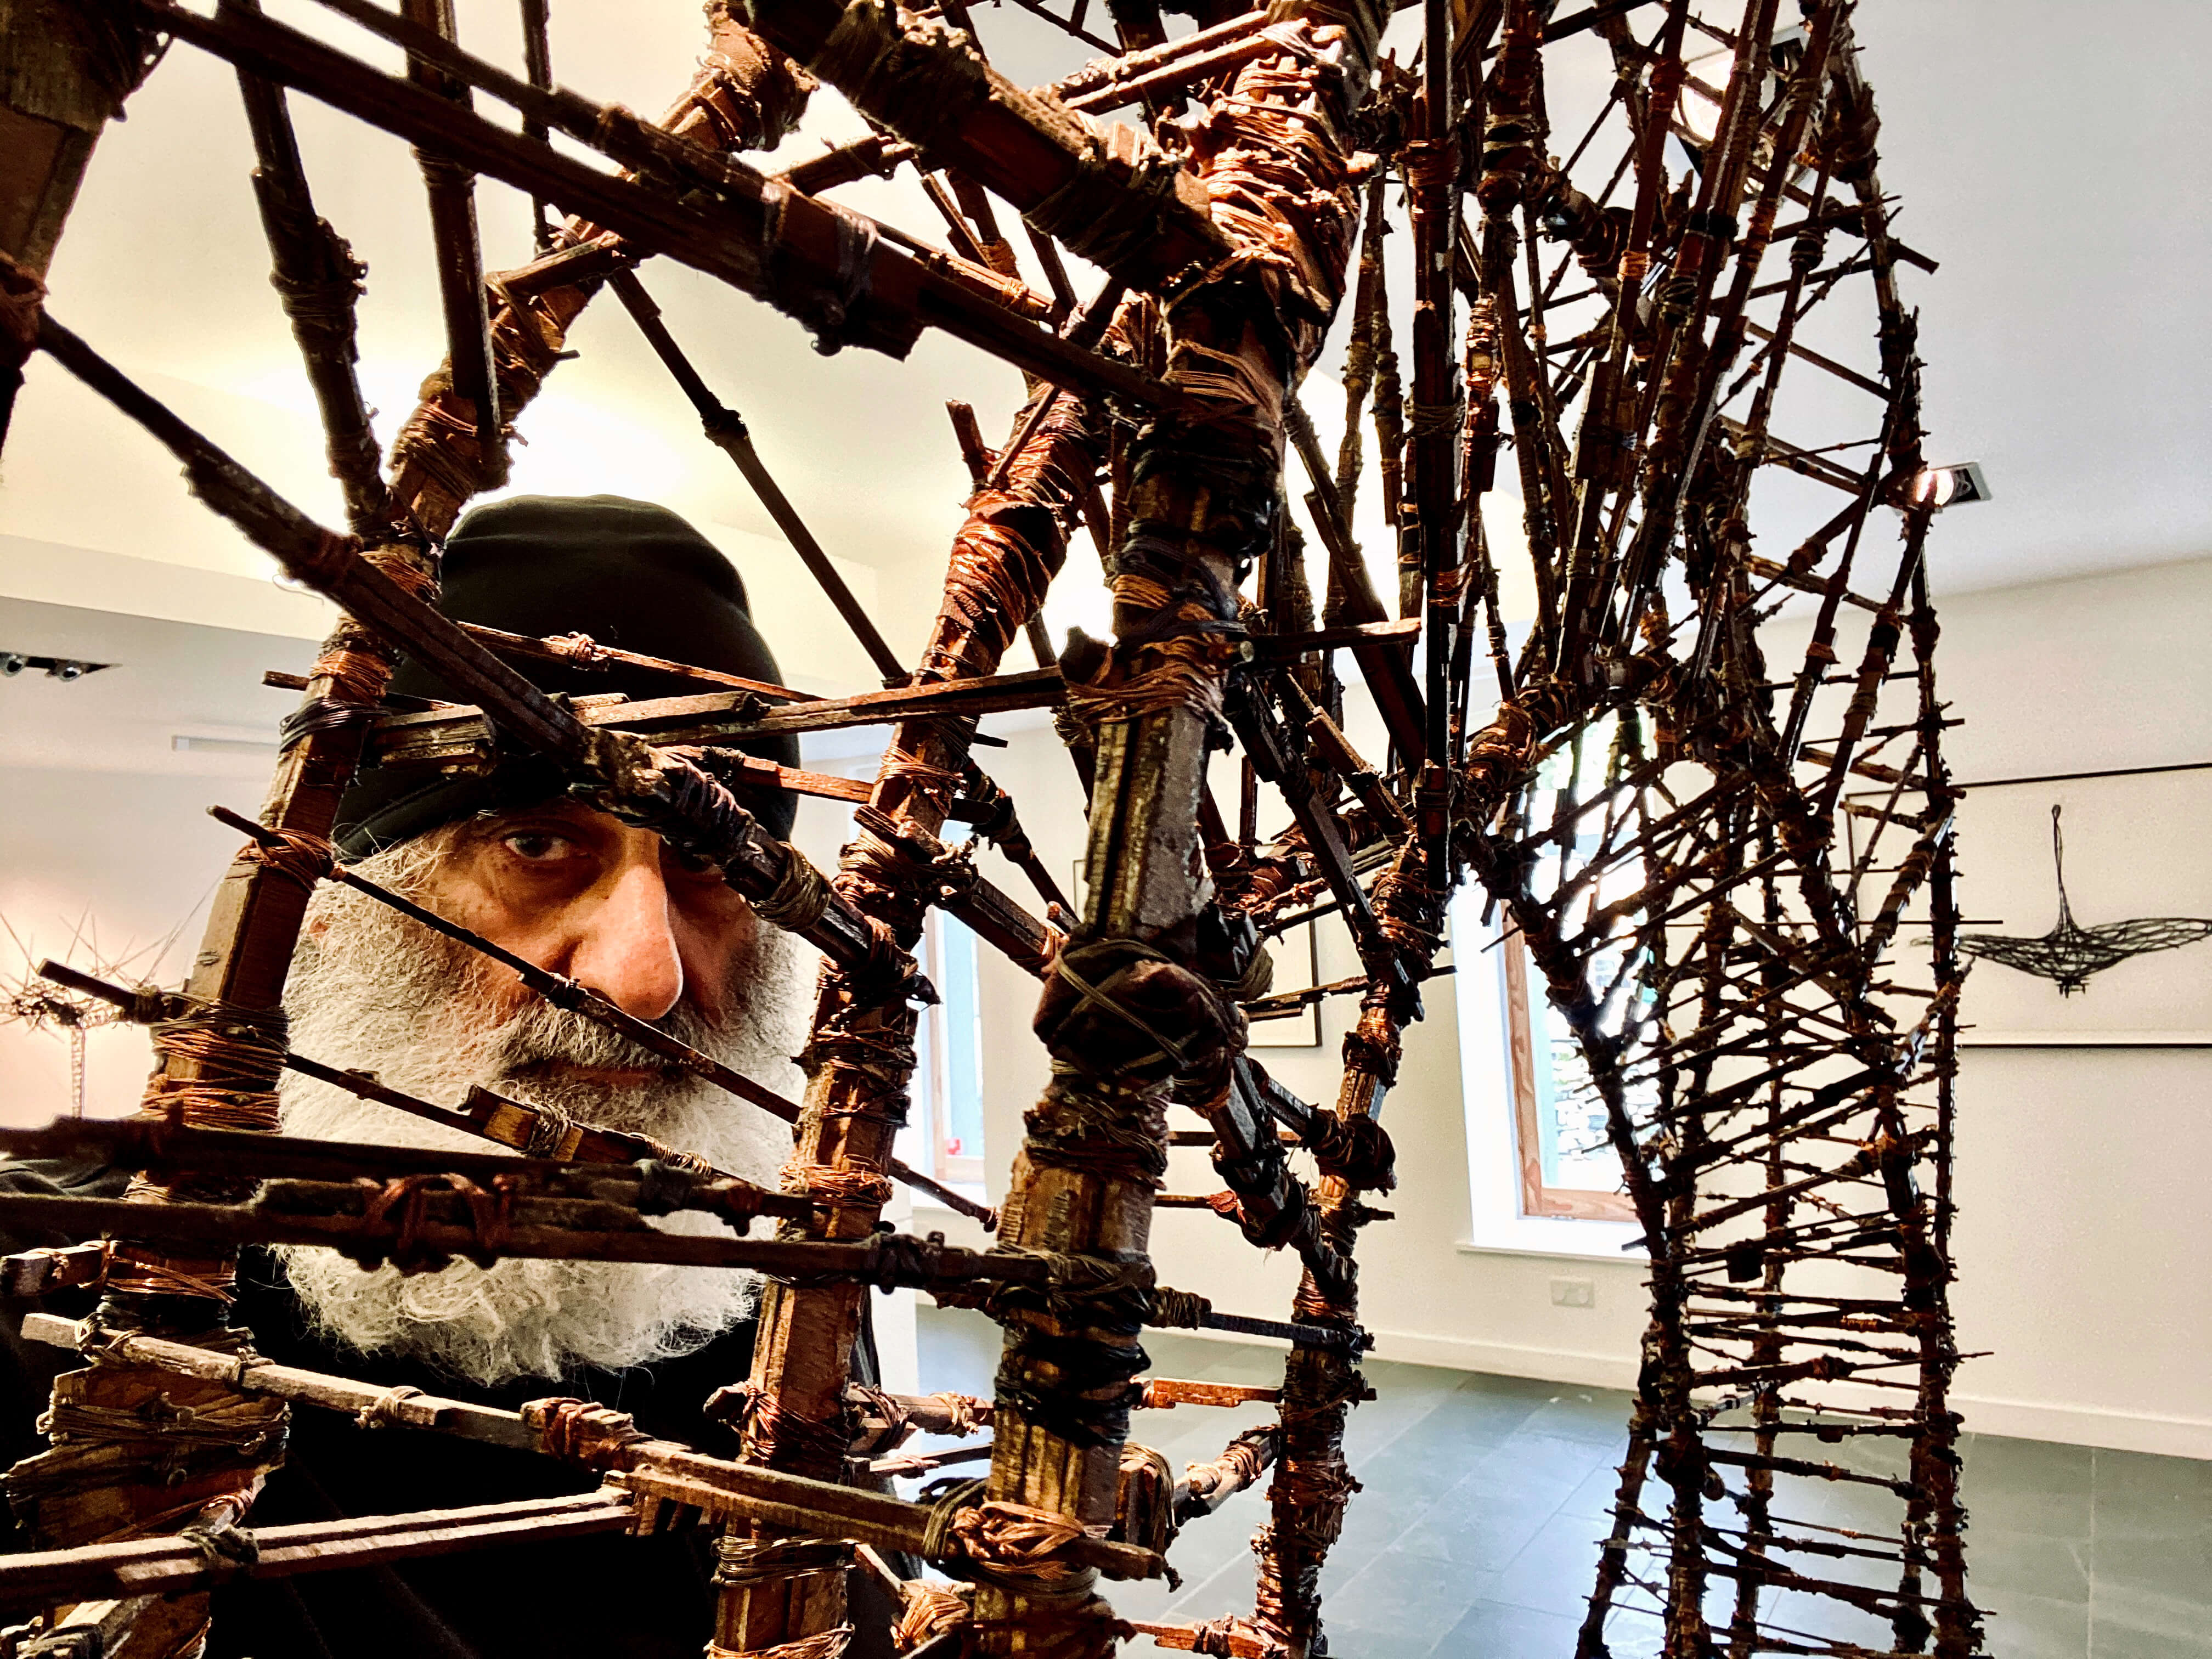 Internationally acclaimed sculptor Gerry Judah exhibits at Dalby Forest this autumn